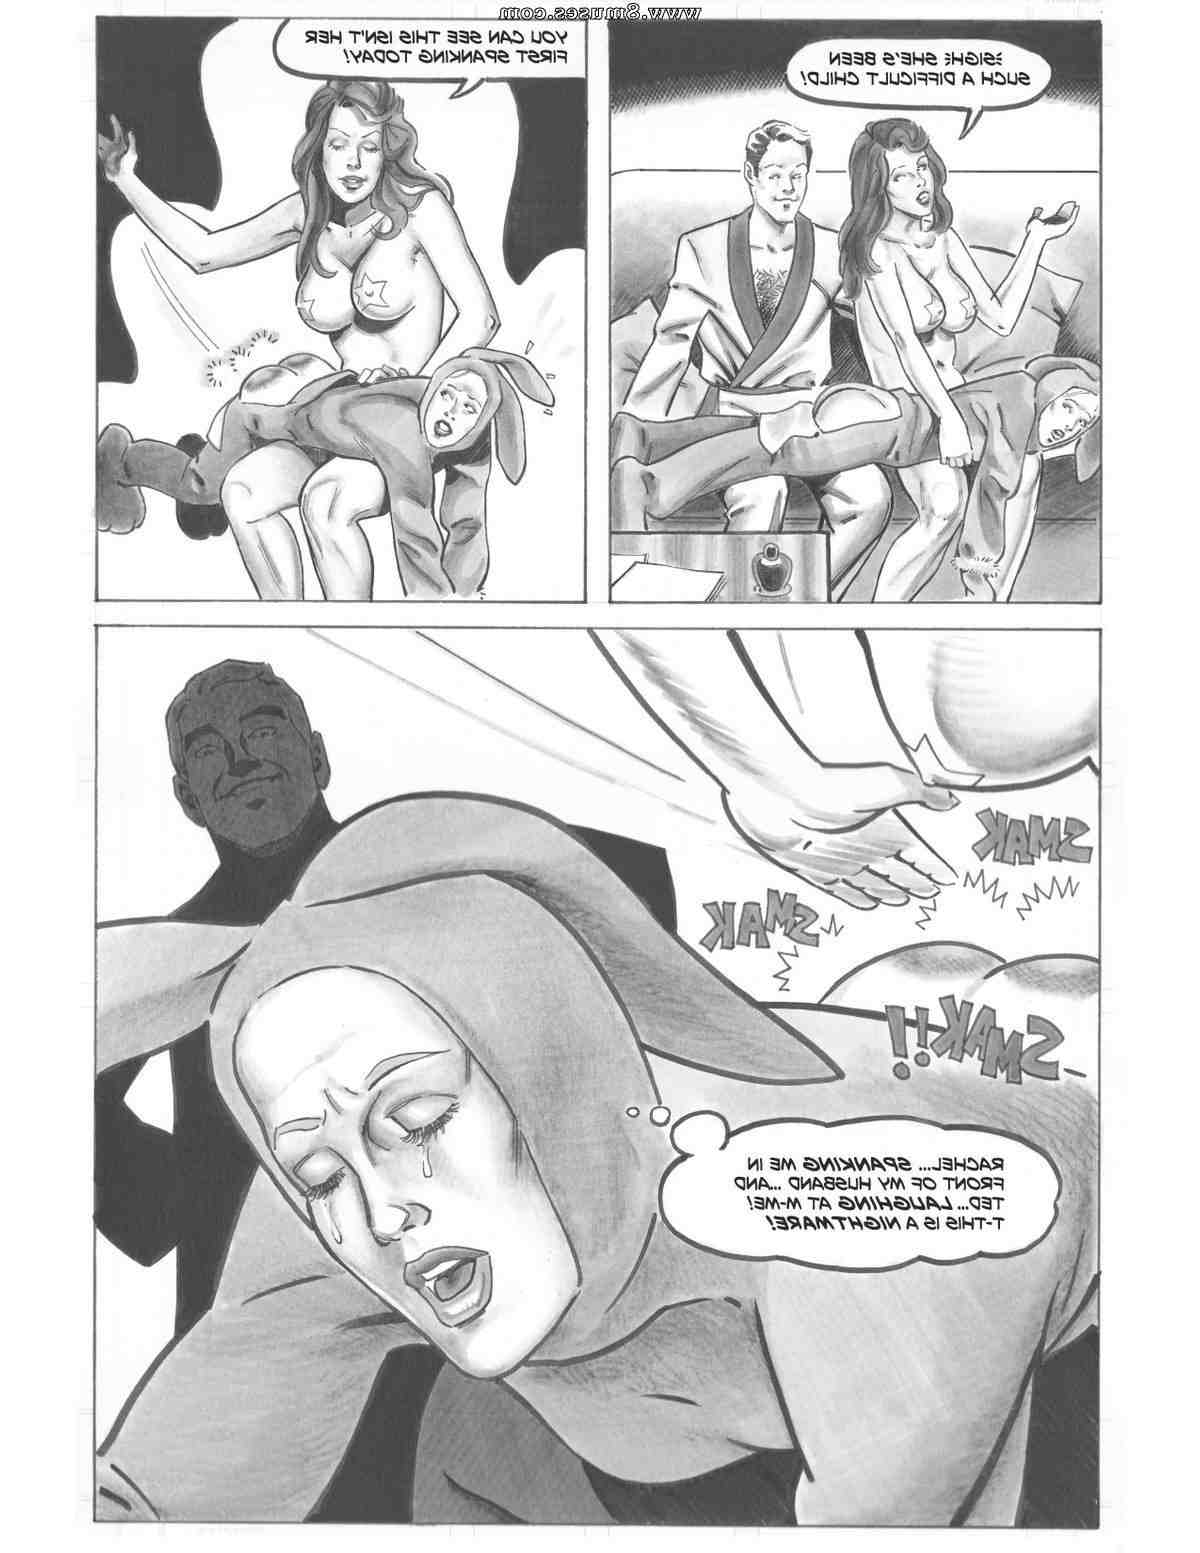 DreamTales-Comics/Teen-Age-Homebreaker Teen-Age_Homebreaker__8muses_-_Sex_and_Porn_Comics_23.jpg